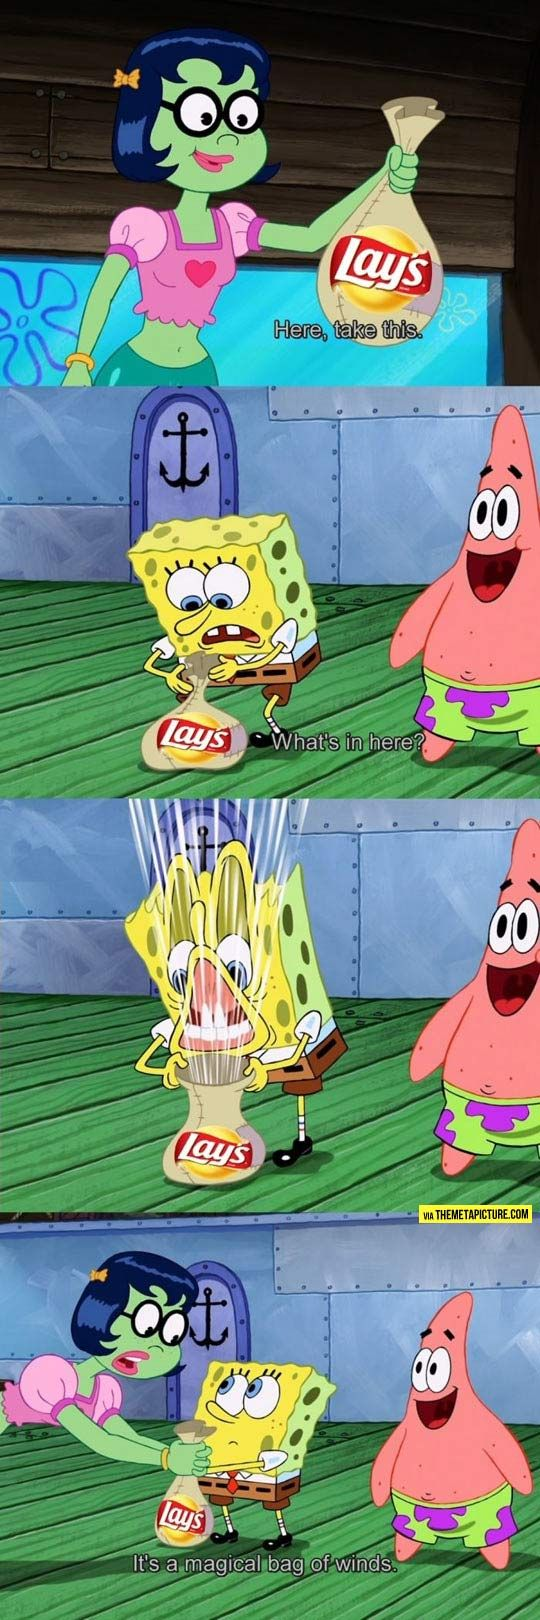 lays chips spongebob squarepants know your meme